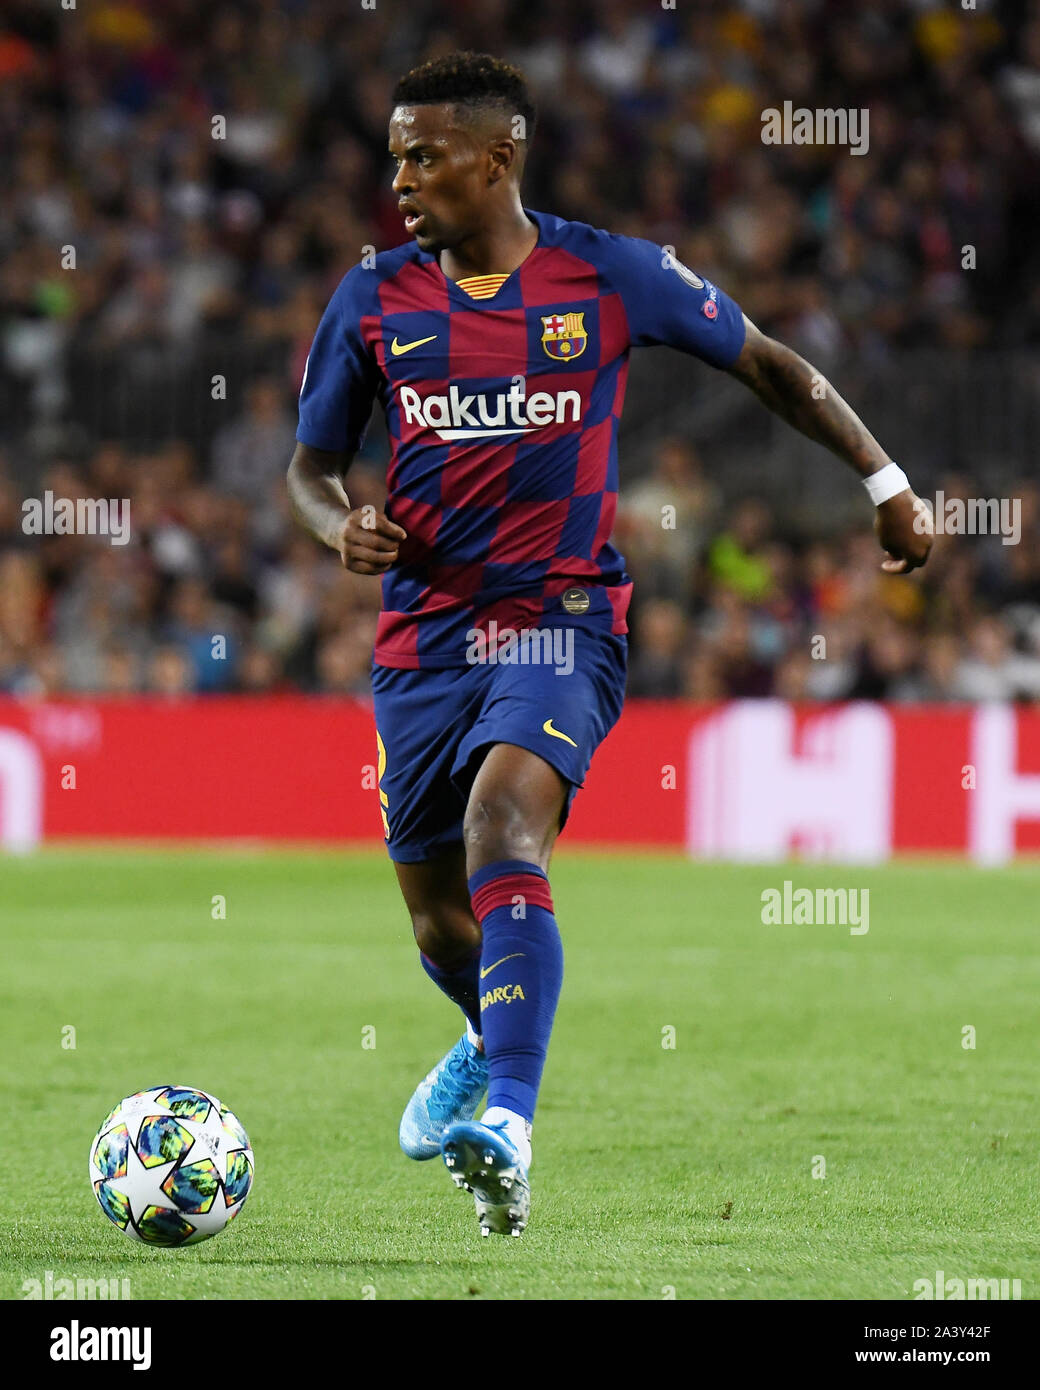 Barcelona Spain 10th Oct 2019 Barcelona 02 10 2019 Uefa Champions League 2019 2020 Date 2 Barcelona Inter De Milan Nelson Semedo Of Fc Barcelona During The Match Fc Barcelona V Juventus Fc